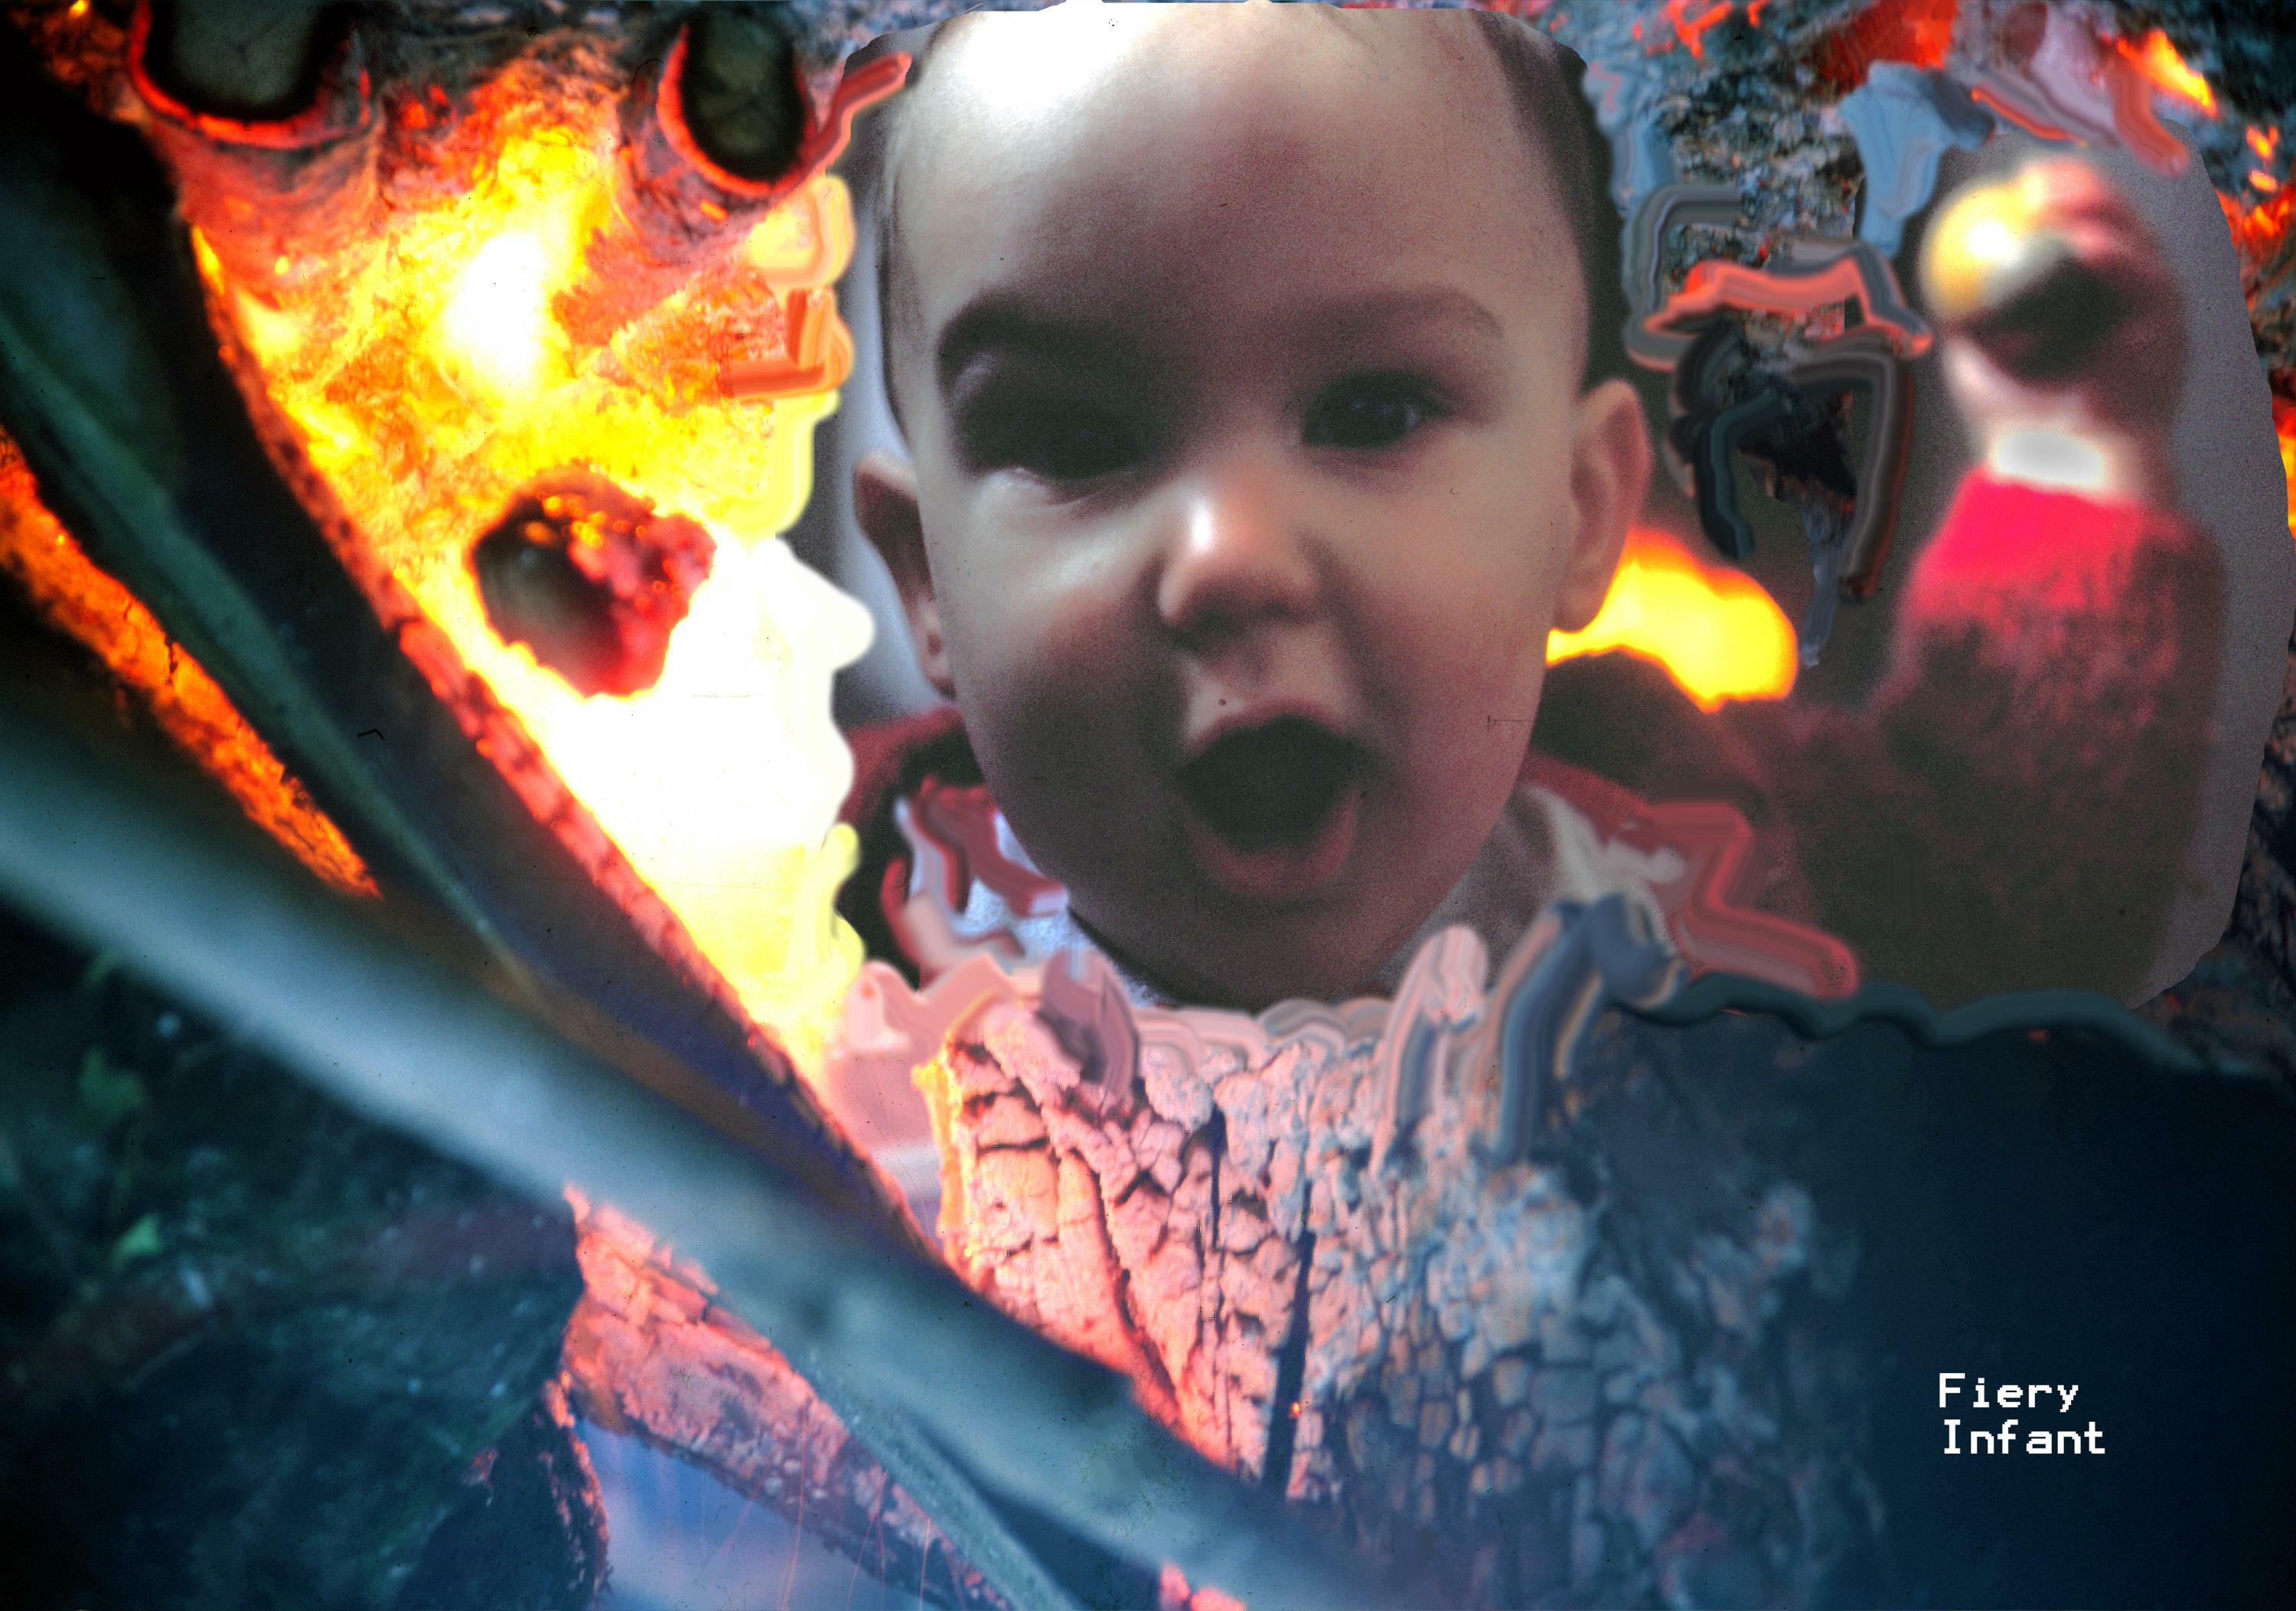 The Fiery Infant